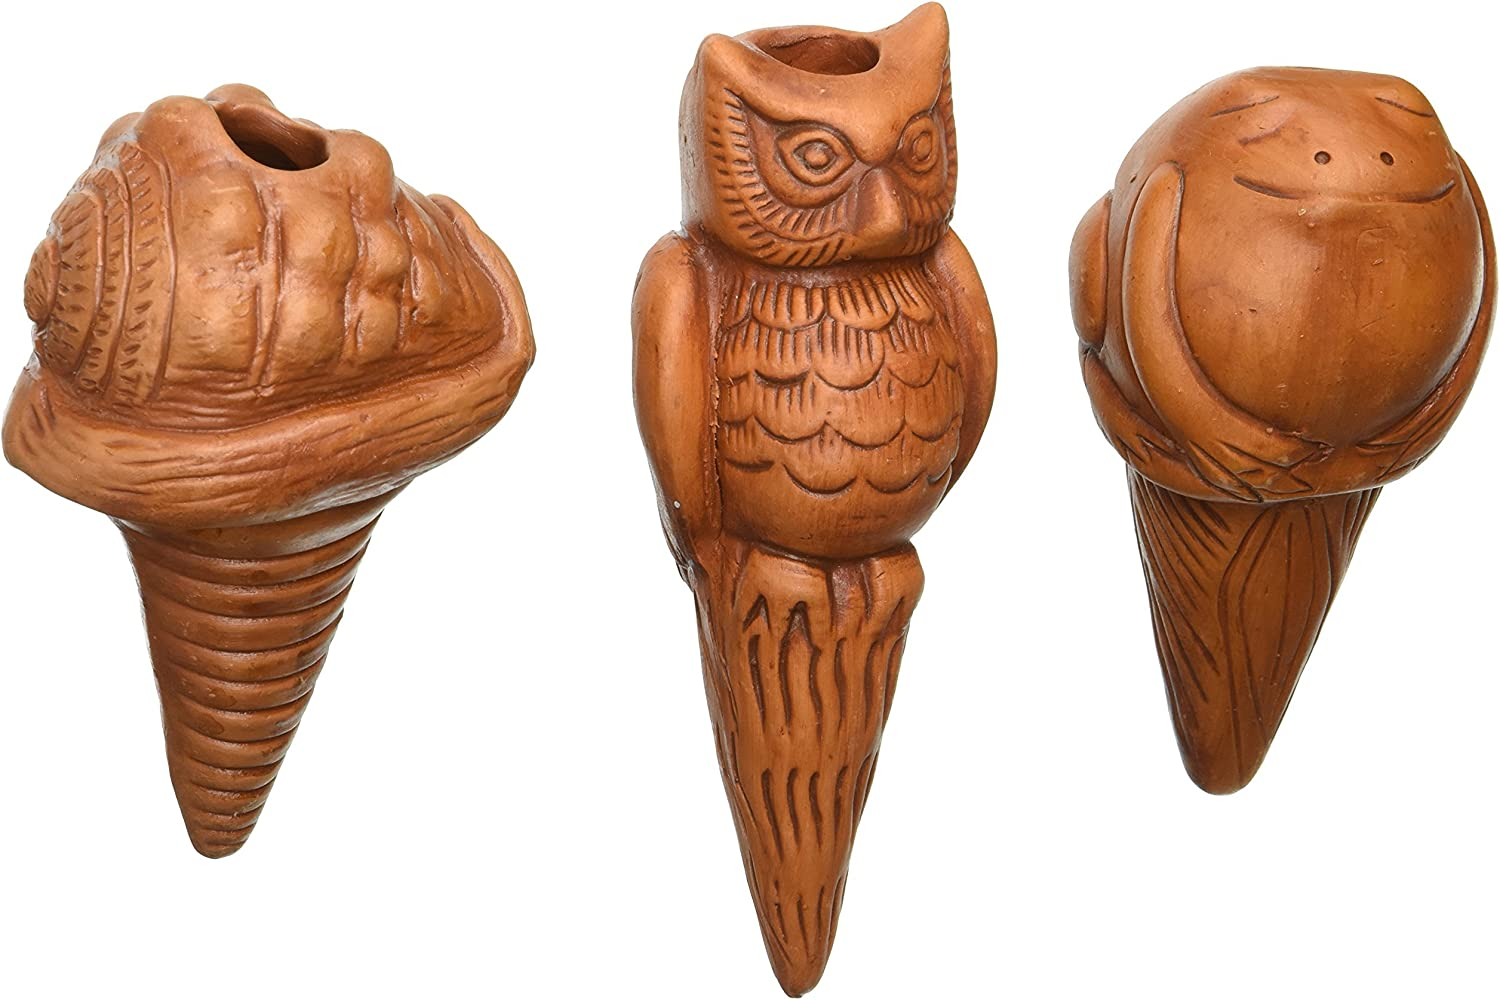 The Crabby Nook Watering Stakes Patio Terracotta Owl Sea Shell Frog Potted Plant, Garden Pots Decor, Set of 3